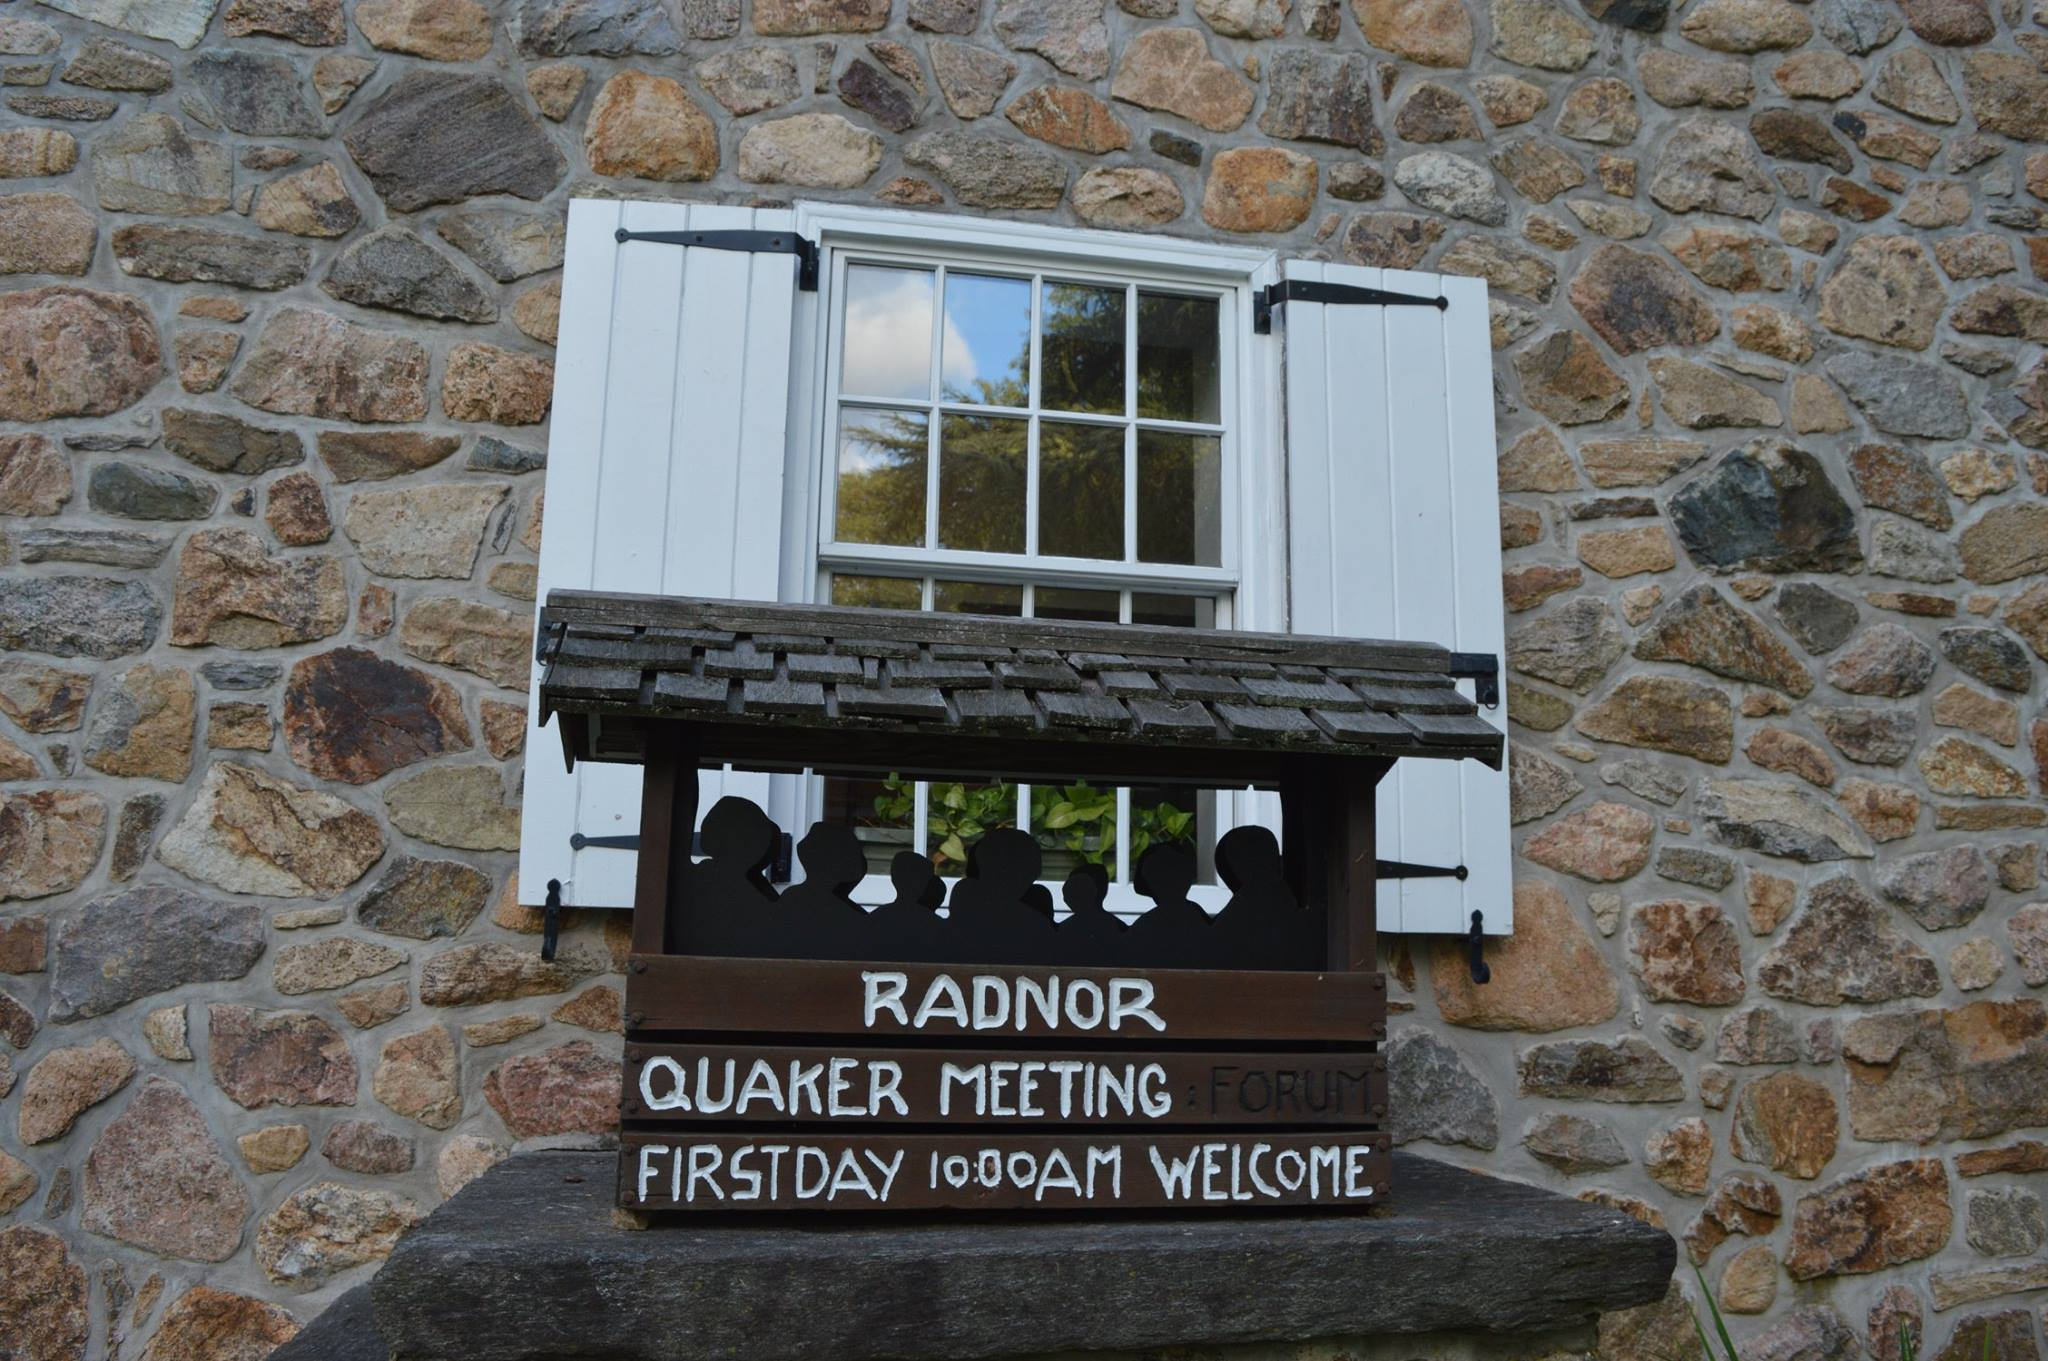 Lecture at Radnor Memorial Library Celebrates Third Centennial of Radnor Friends Meeting